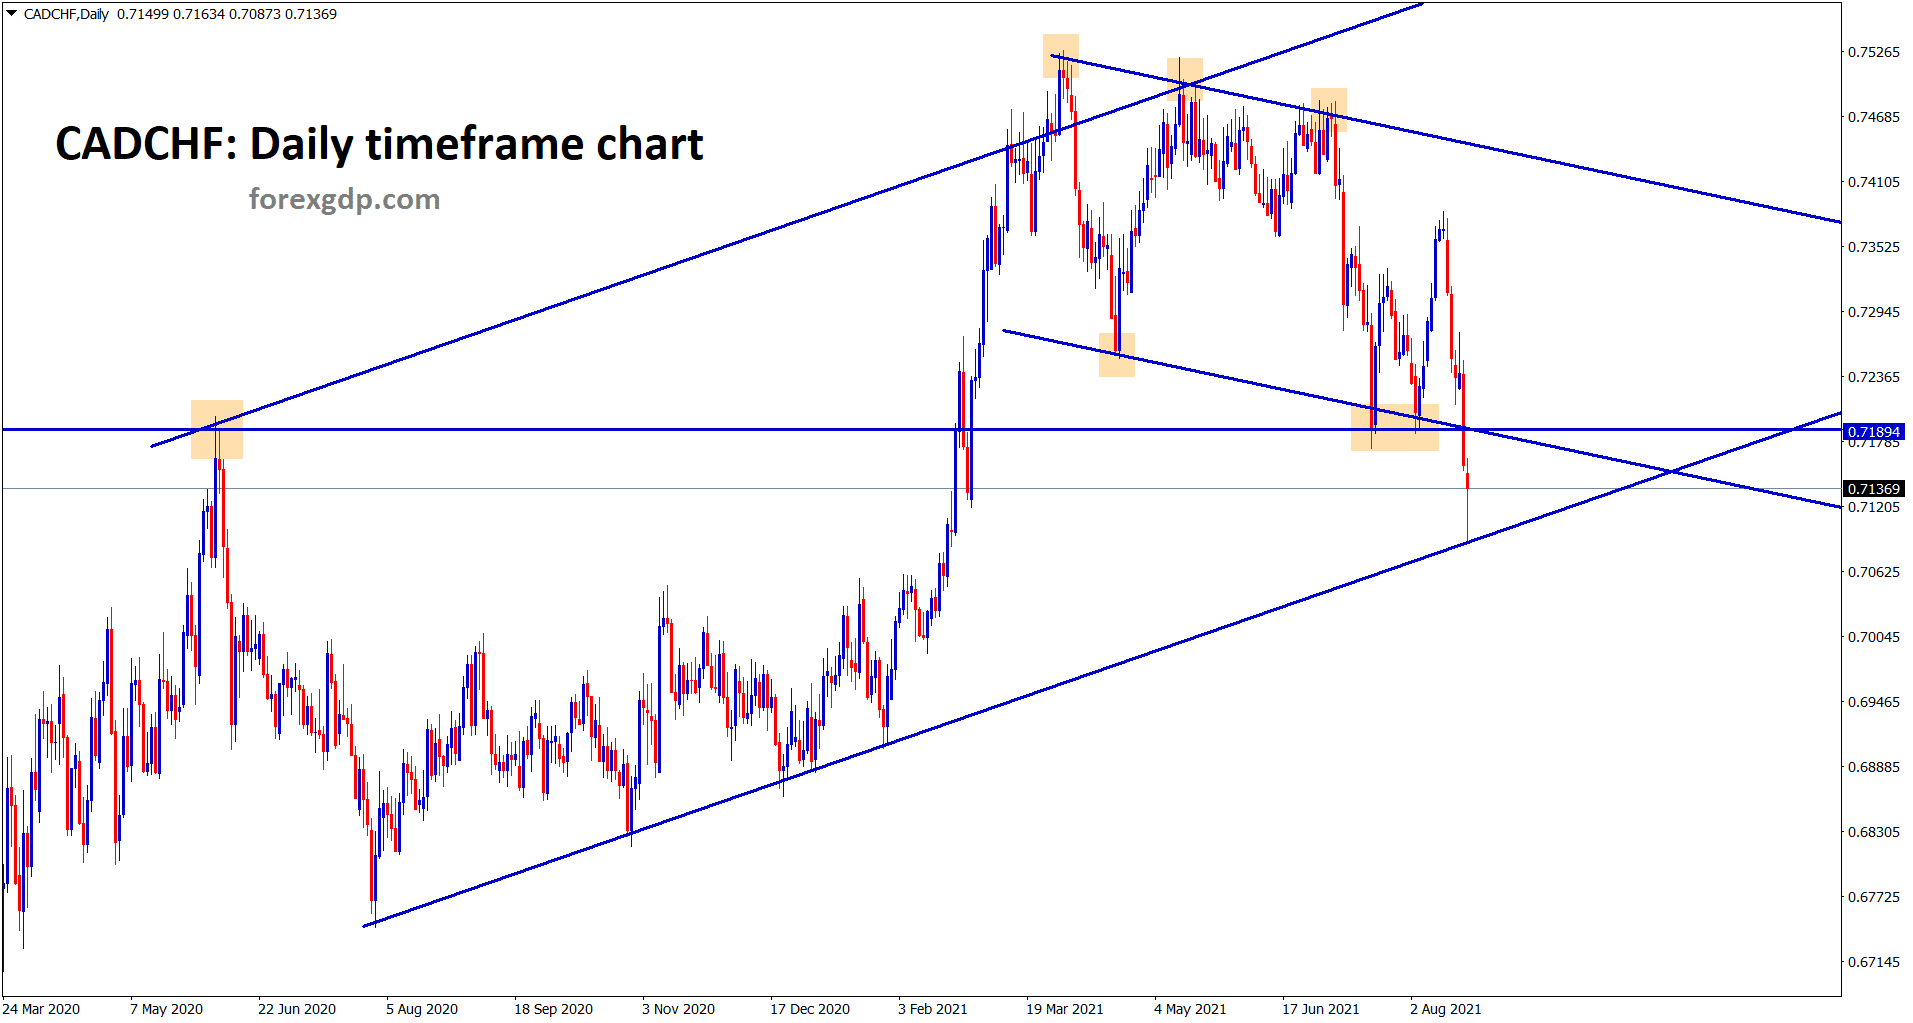 CADCHF hits the higher low of the bigger ascending channel